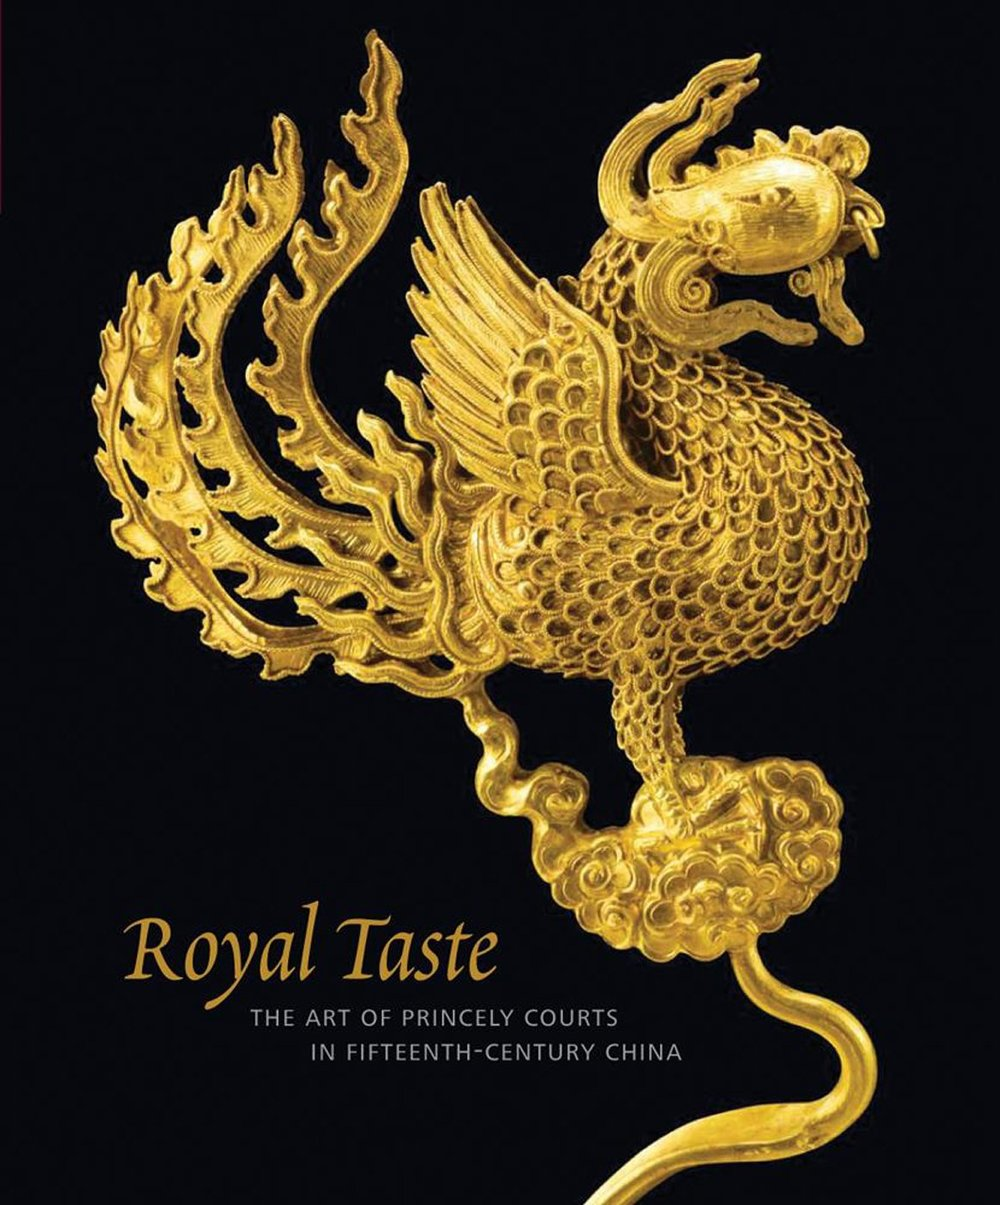 Royal Taste catalogue cover pic.jpg